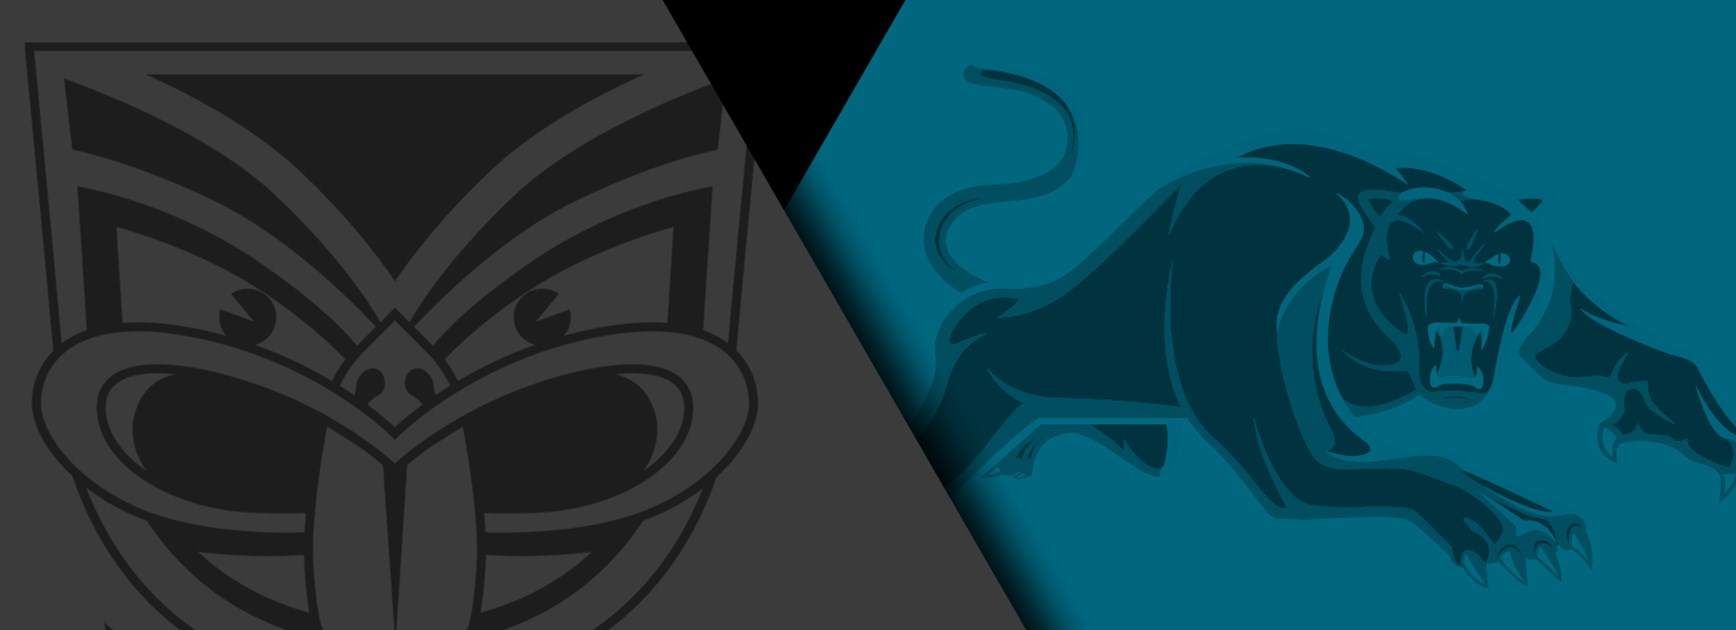 Warriors-Panthers preview.